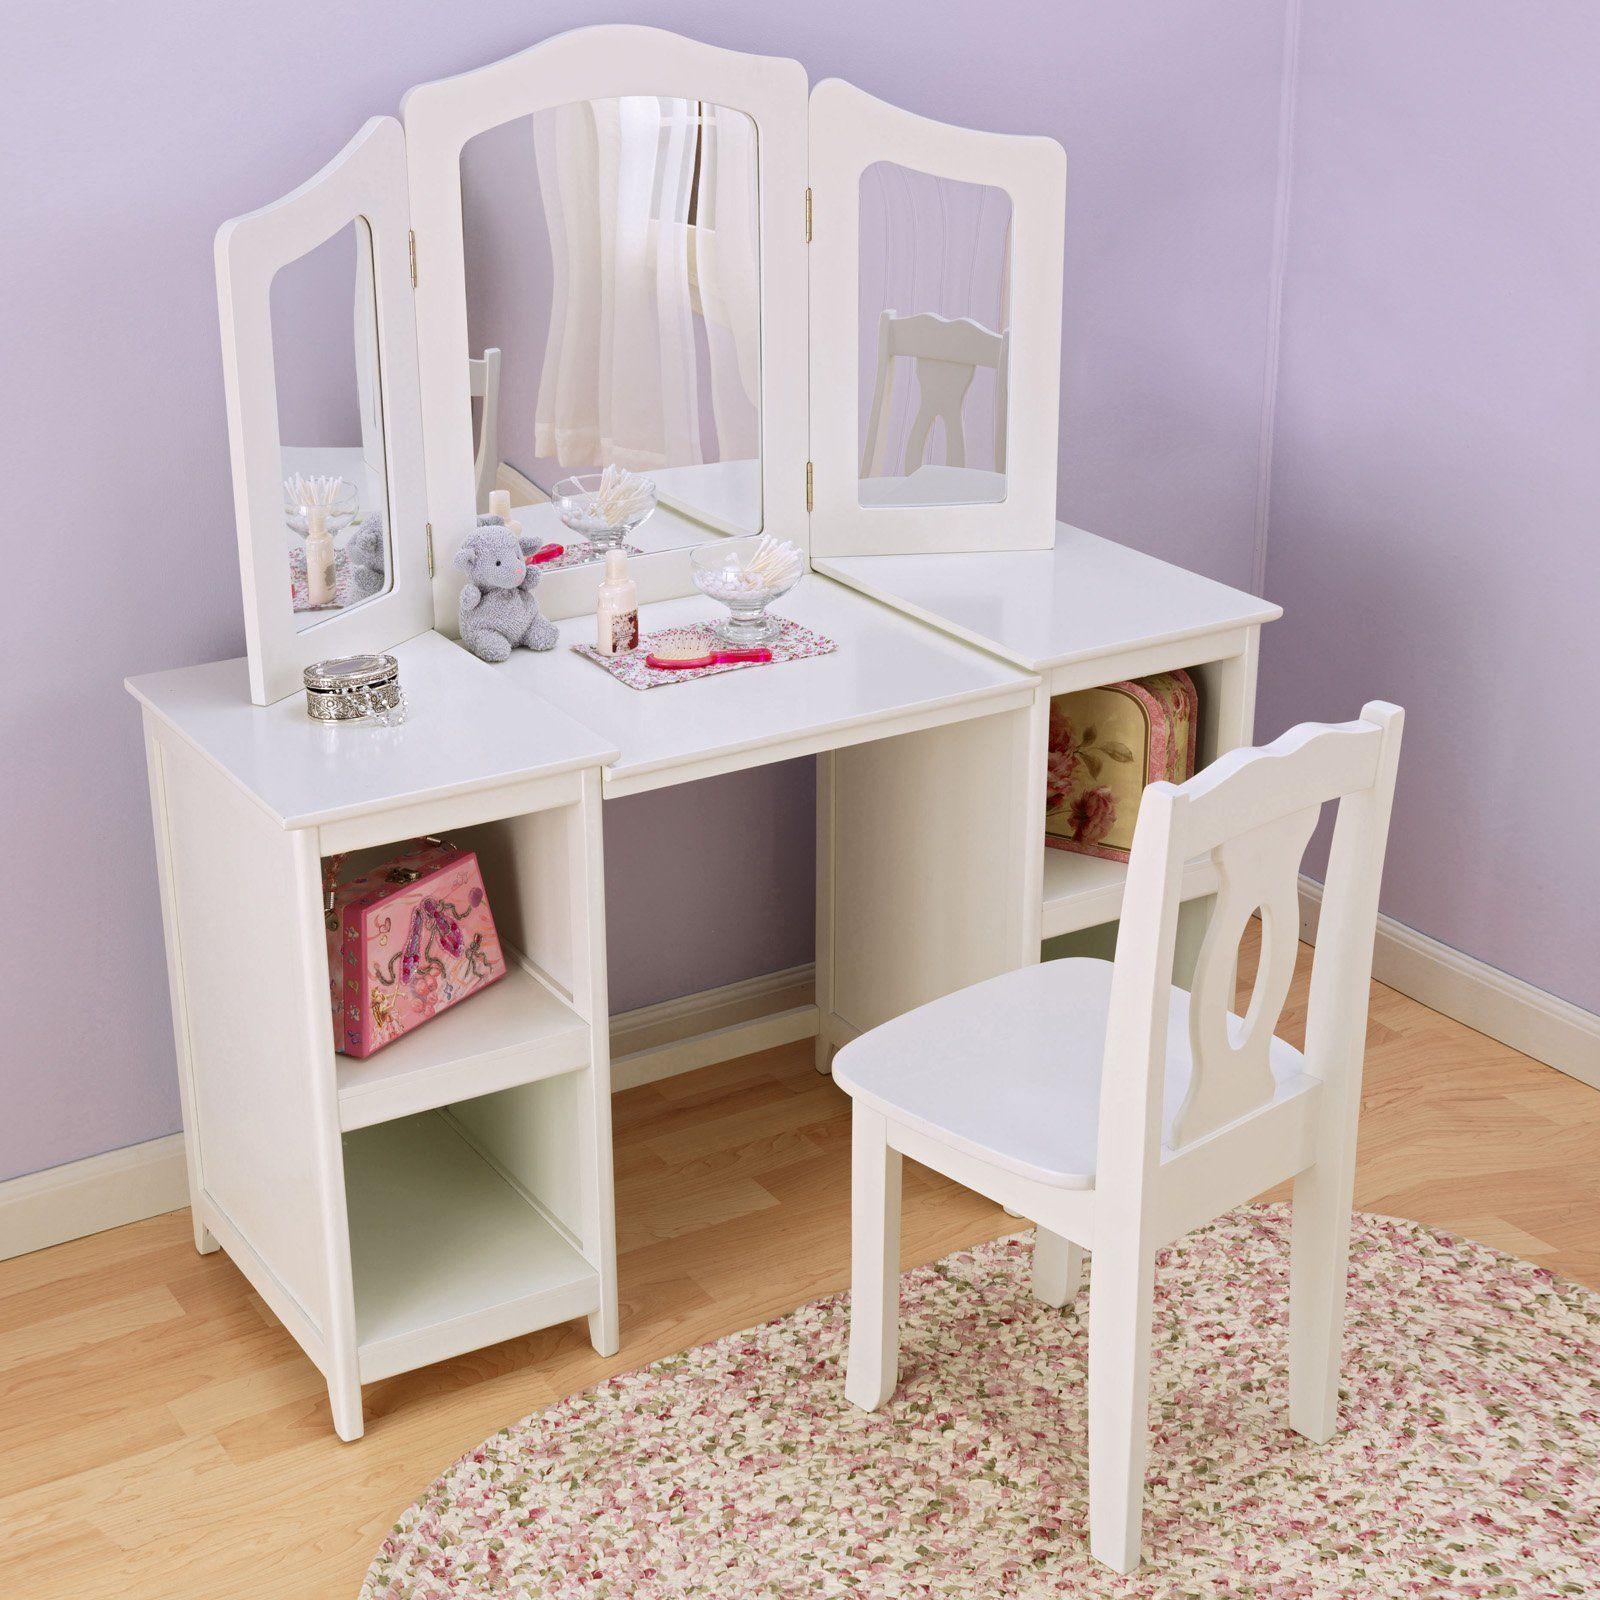 Little girls play vanity table vanity tables vanities and plays kidkraft deluxe vanity chair 13018 perfect for any girls room the kidkraft geotapseo Images